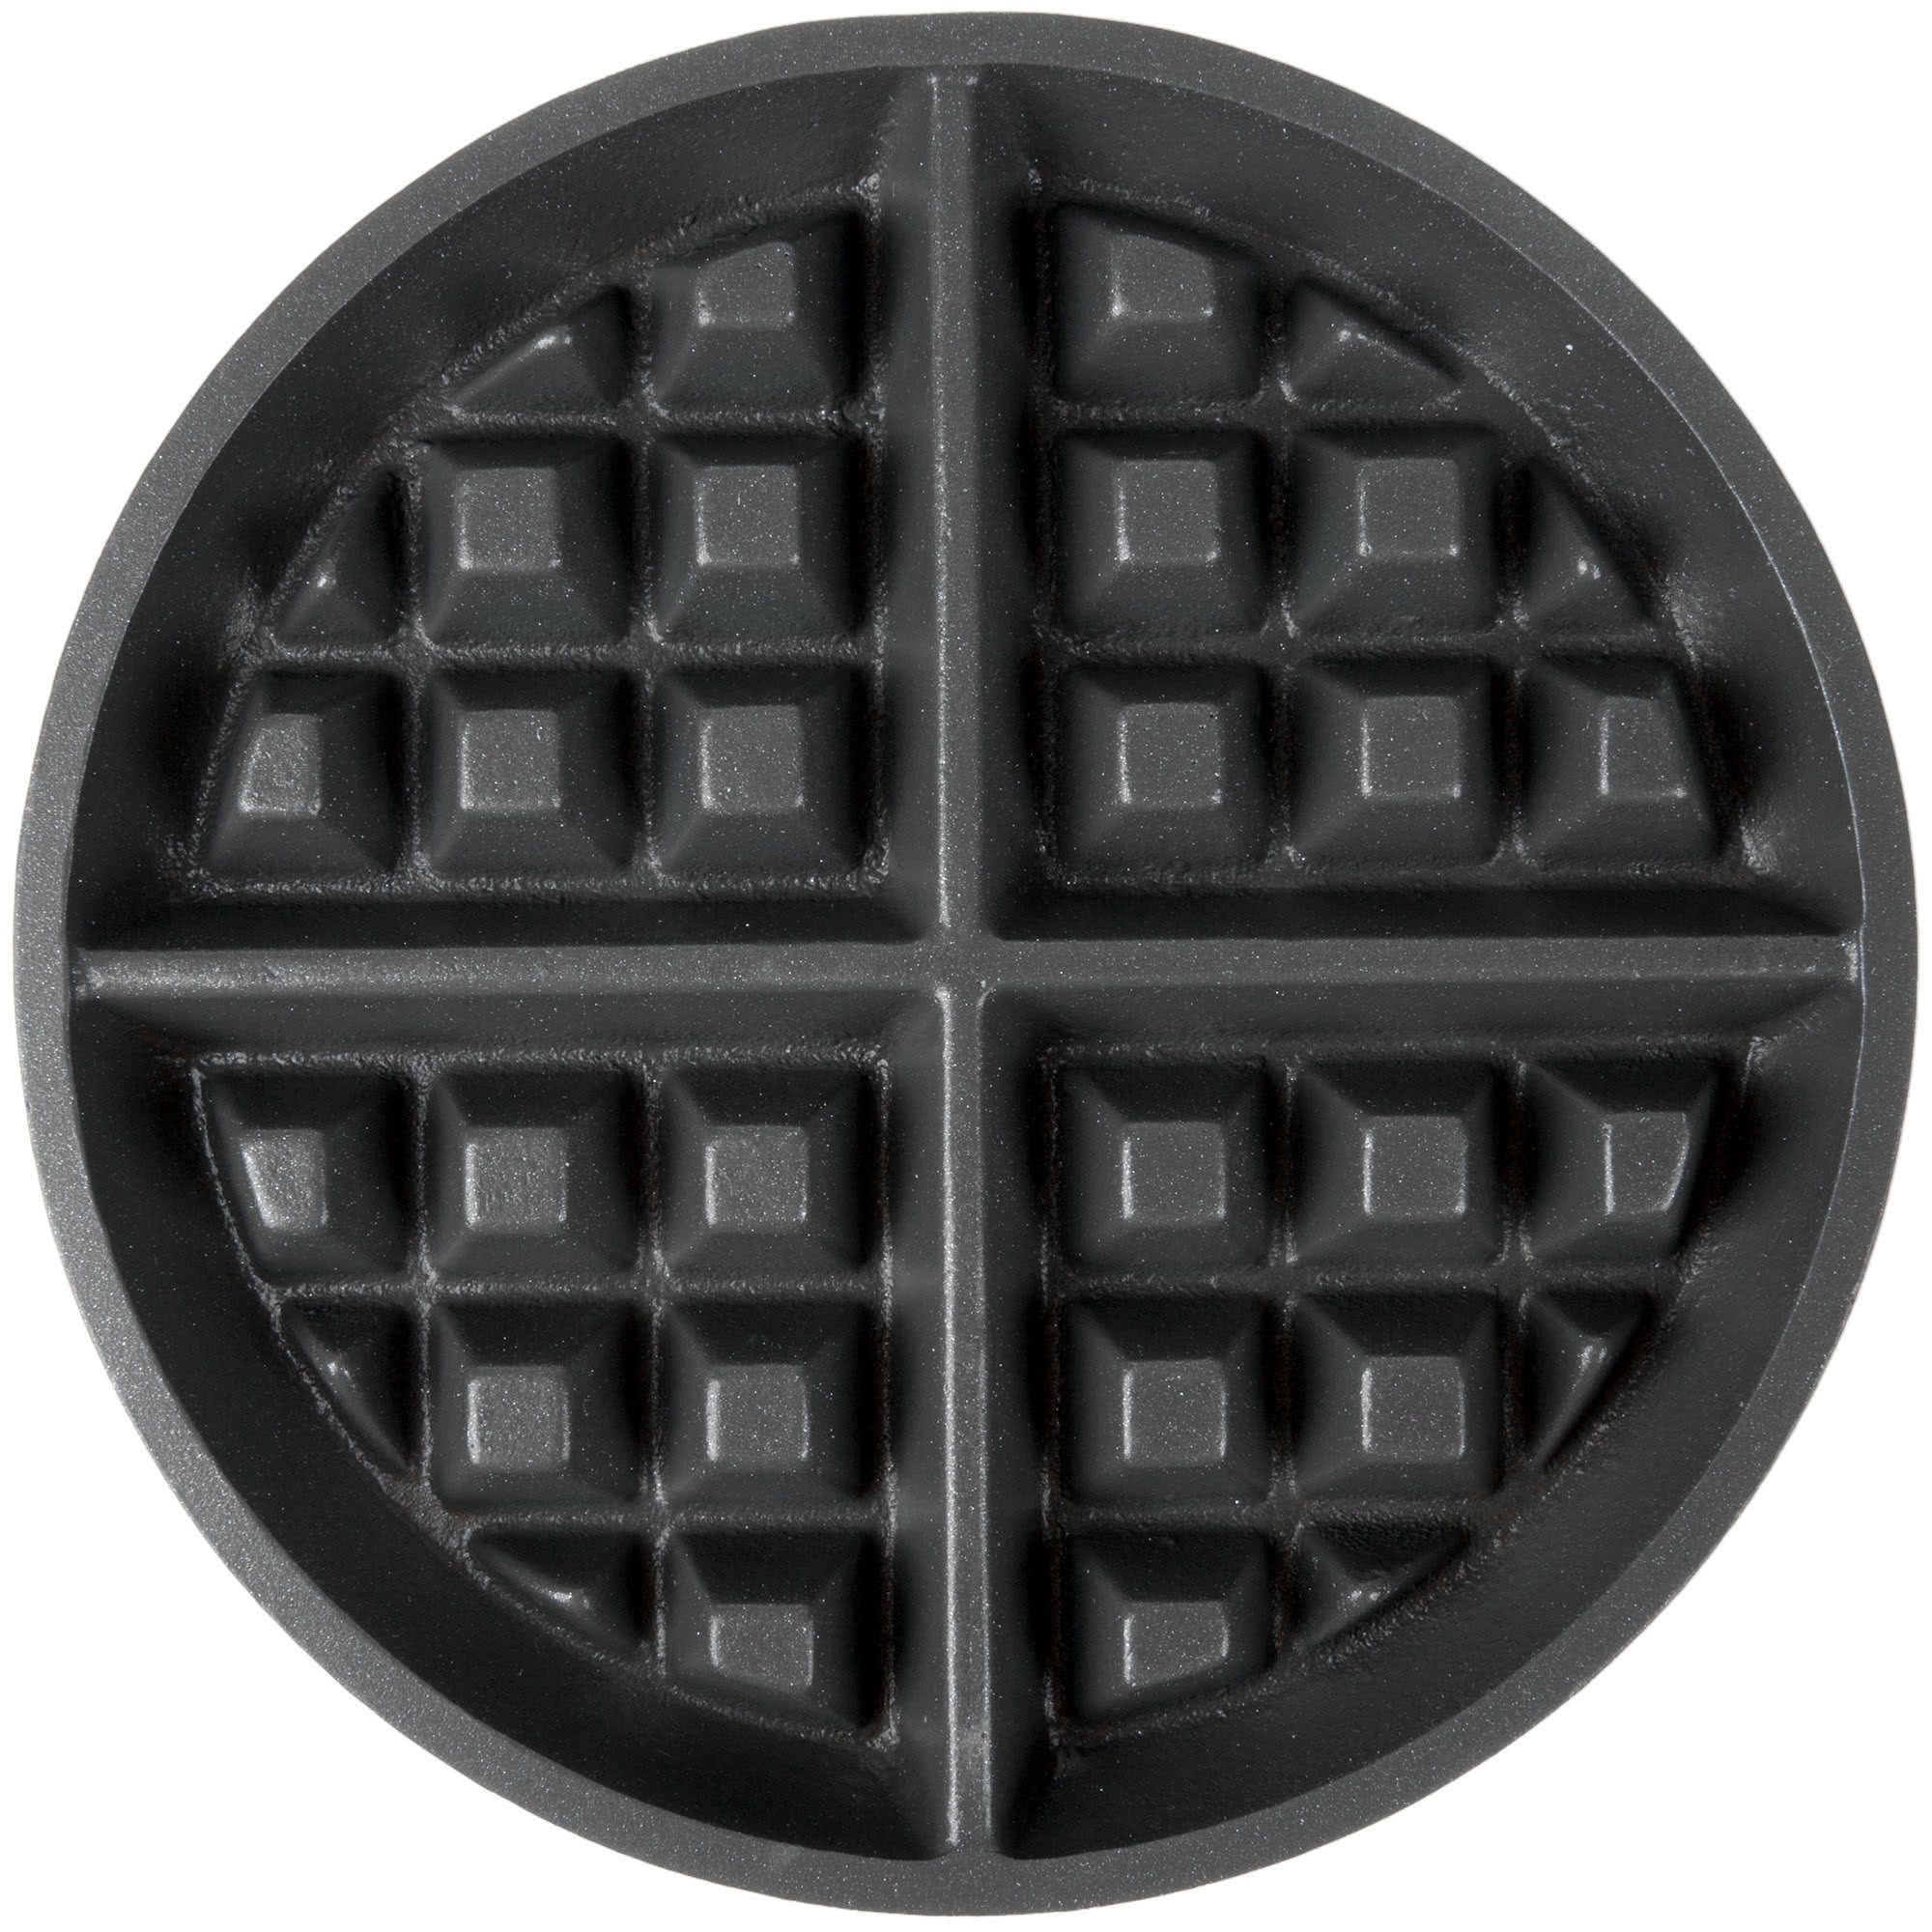 "Nemco 77003 Removable 7"" Silverstone Grid Set with Grid Post for 7020 Series Waffle Makers"